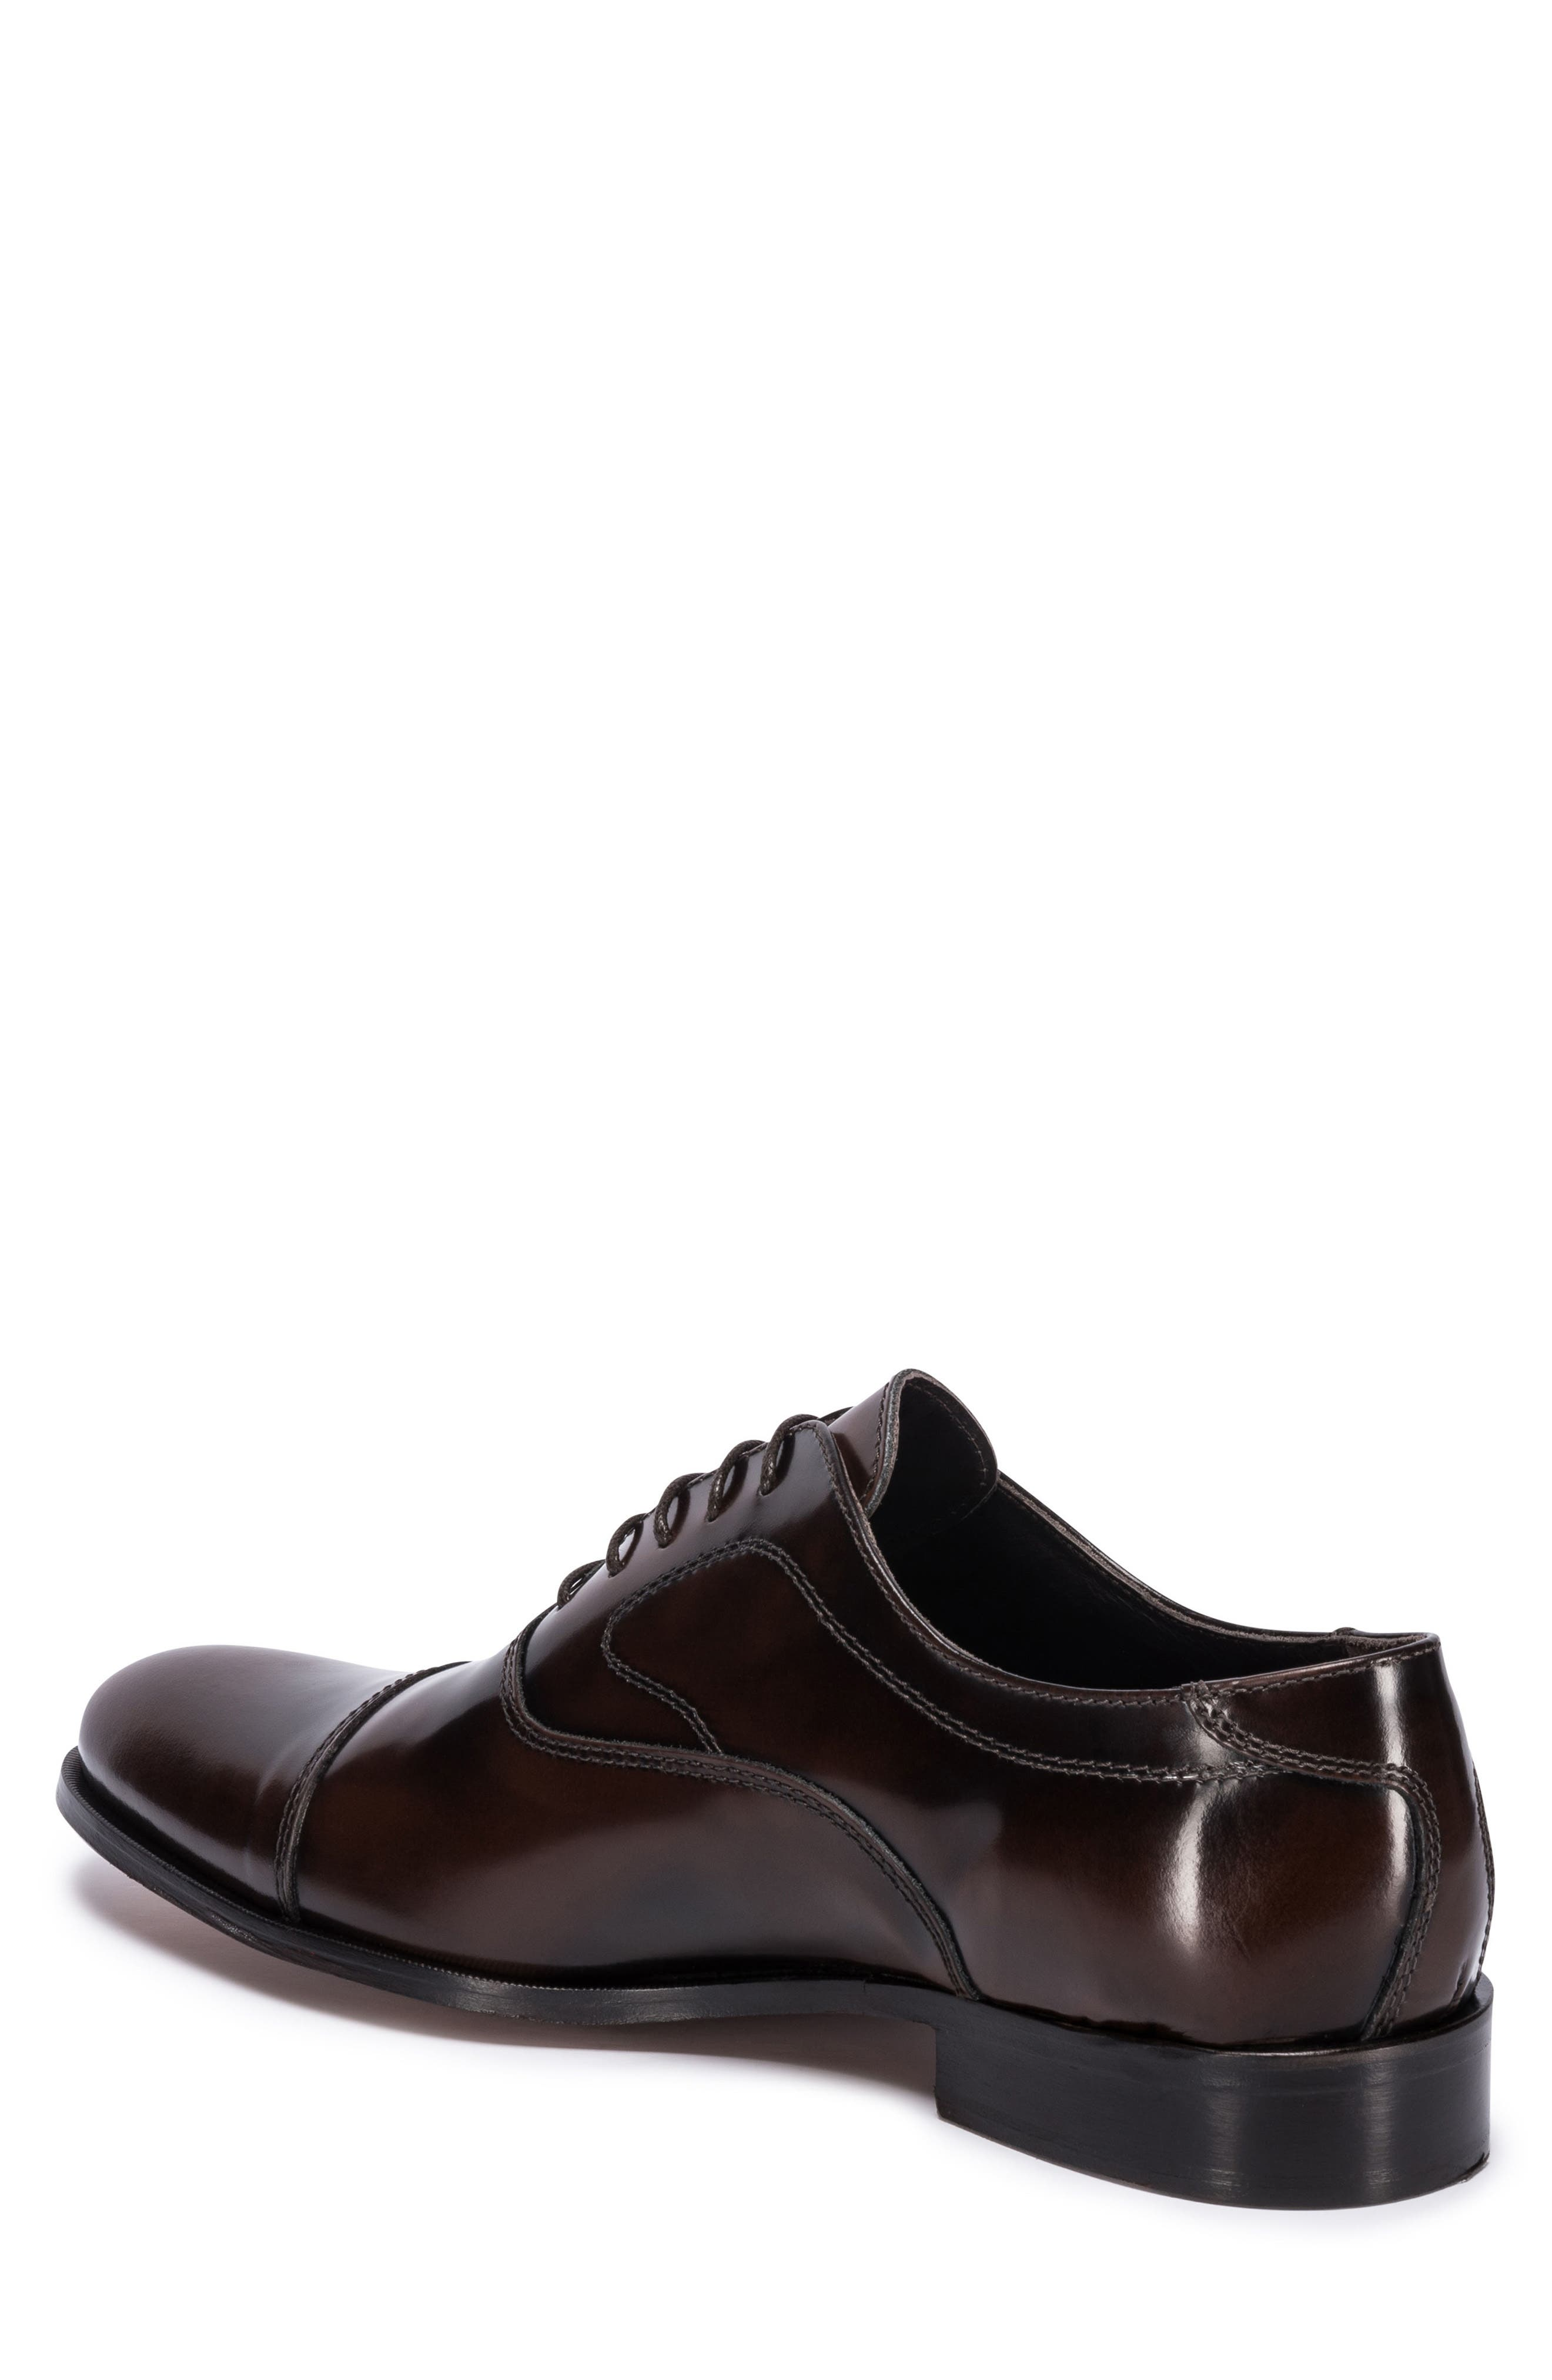 Garda Cap Toe Oxford,                             Alternate thumbnail 2, color,                             203